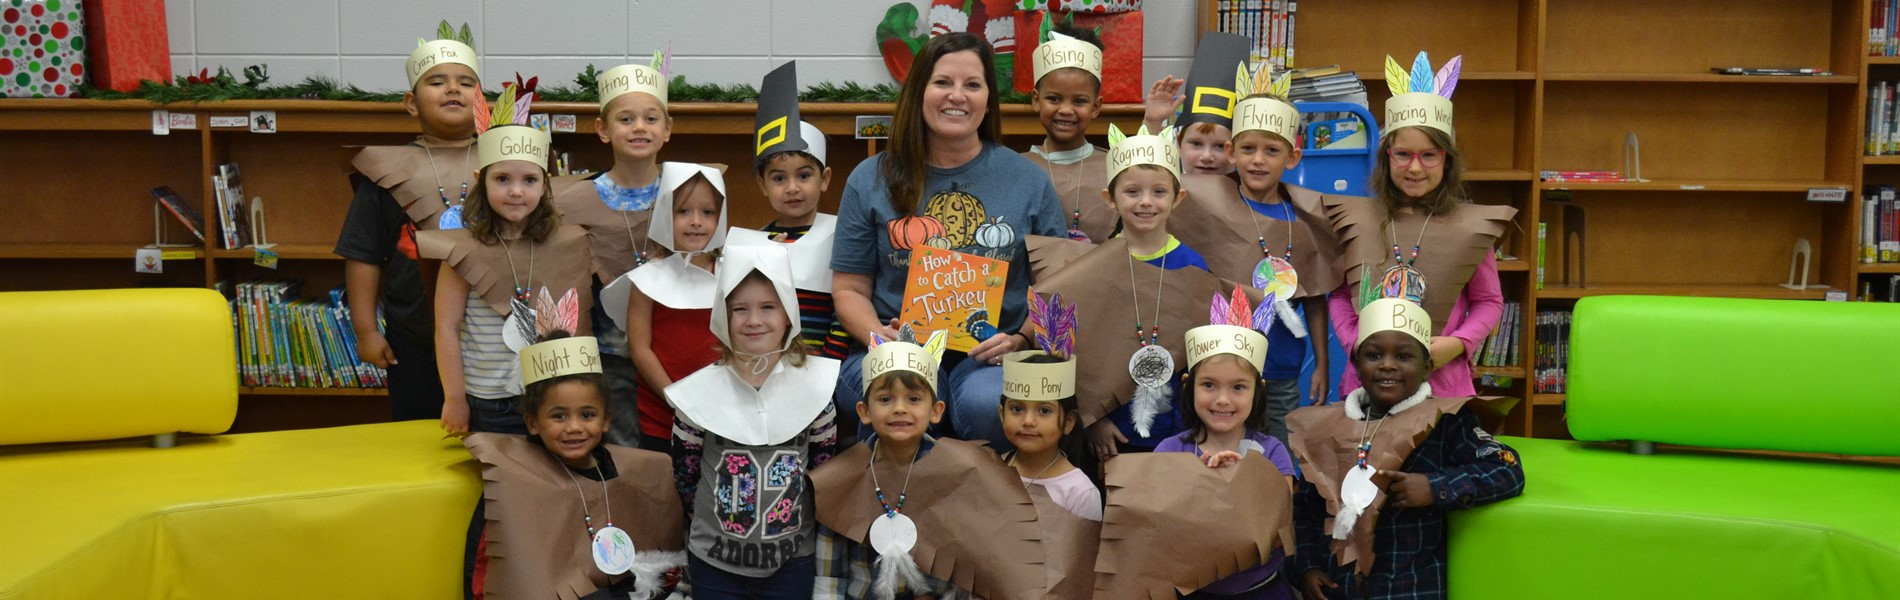 Media specialist with kindergarten pilgrims and indians